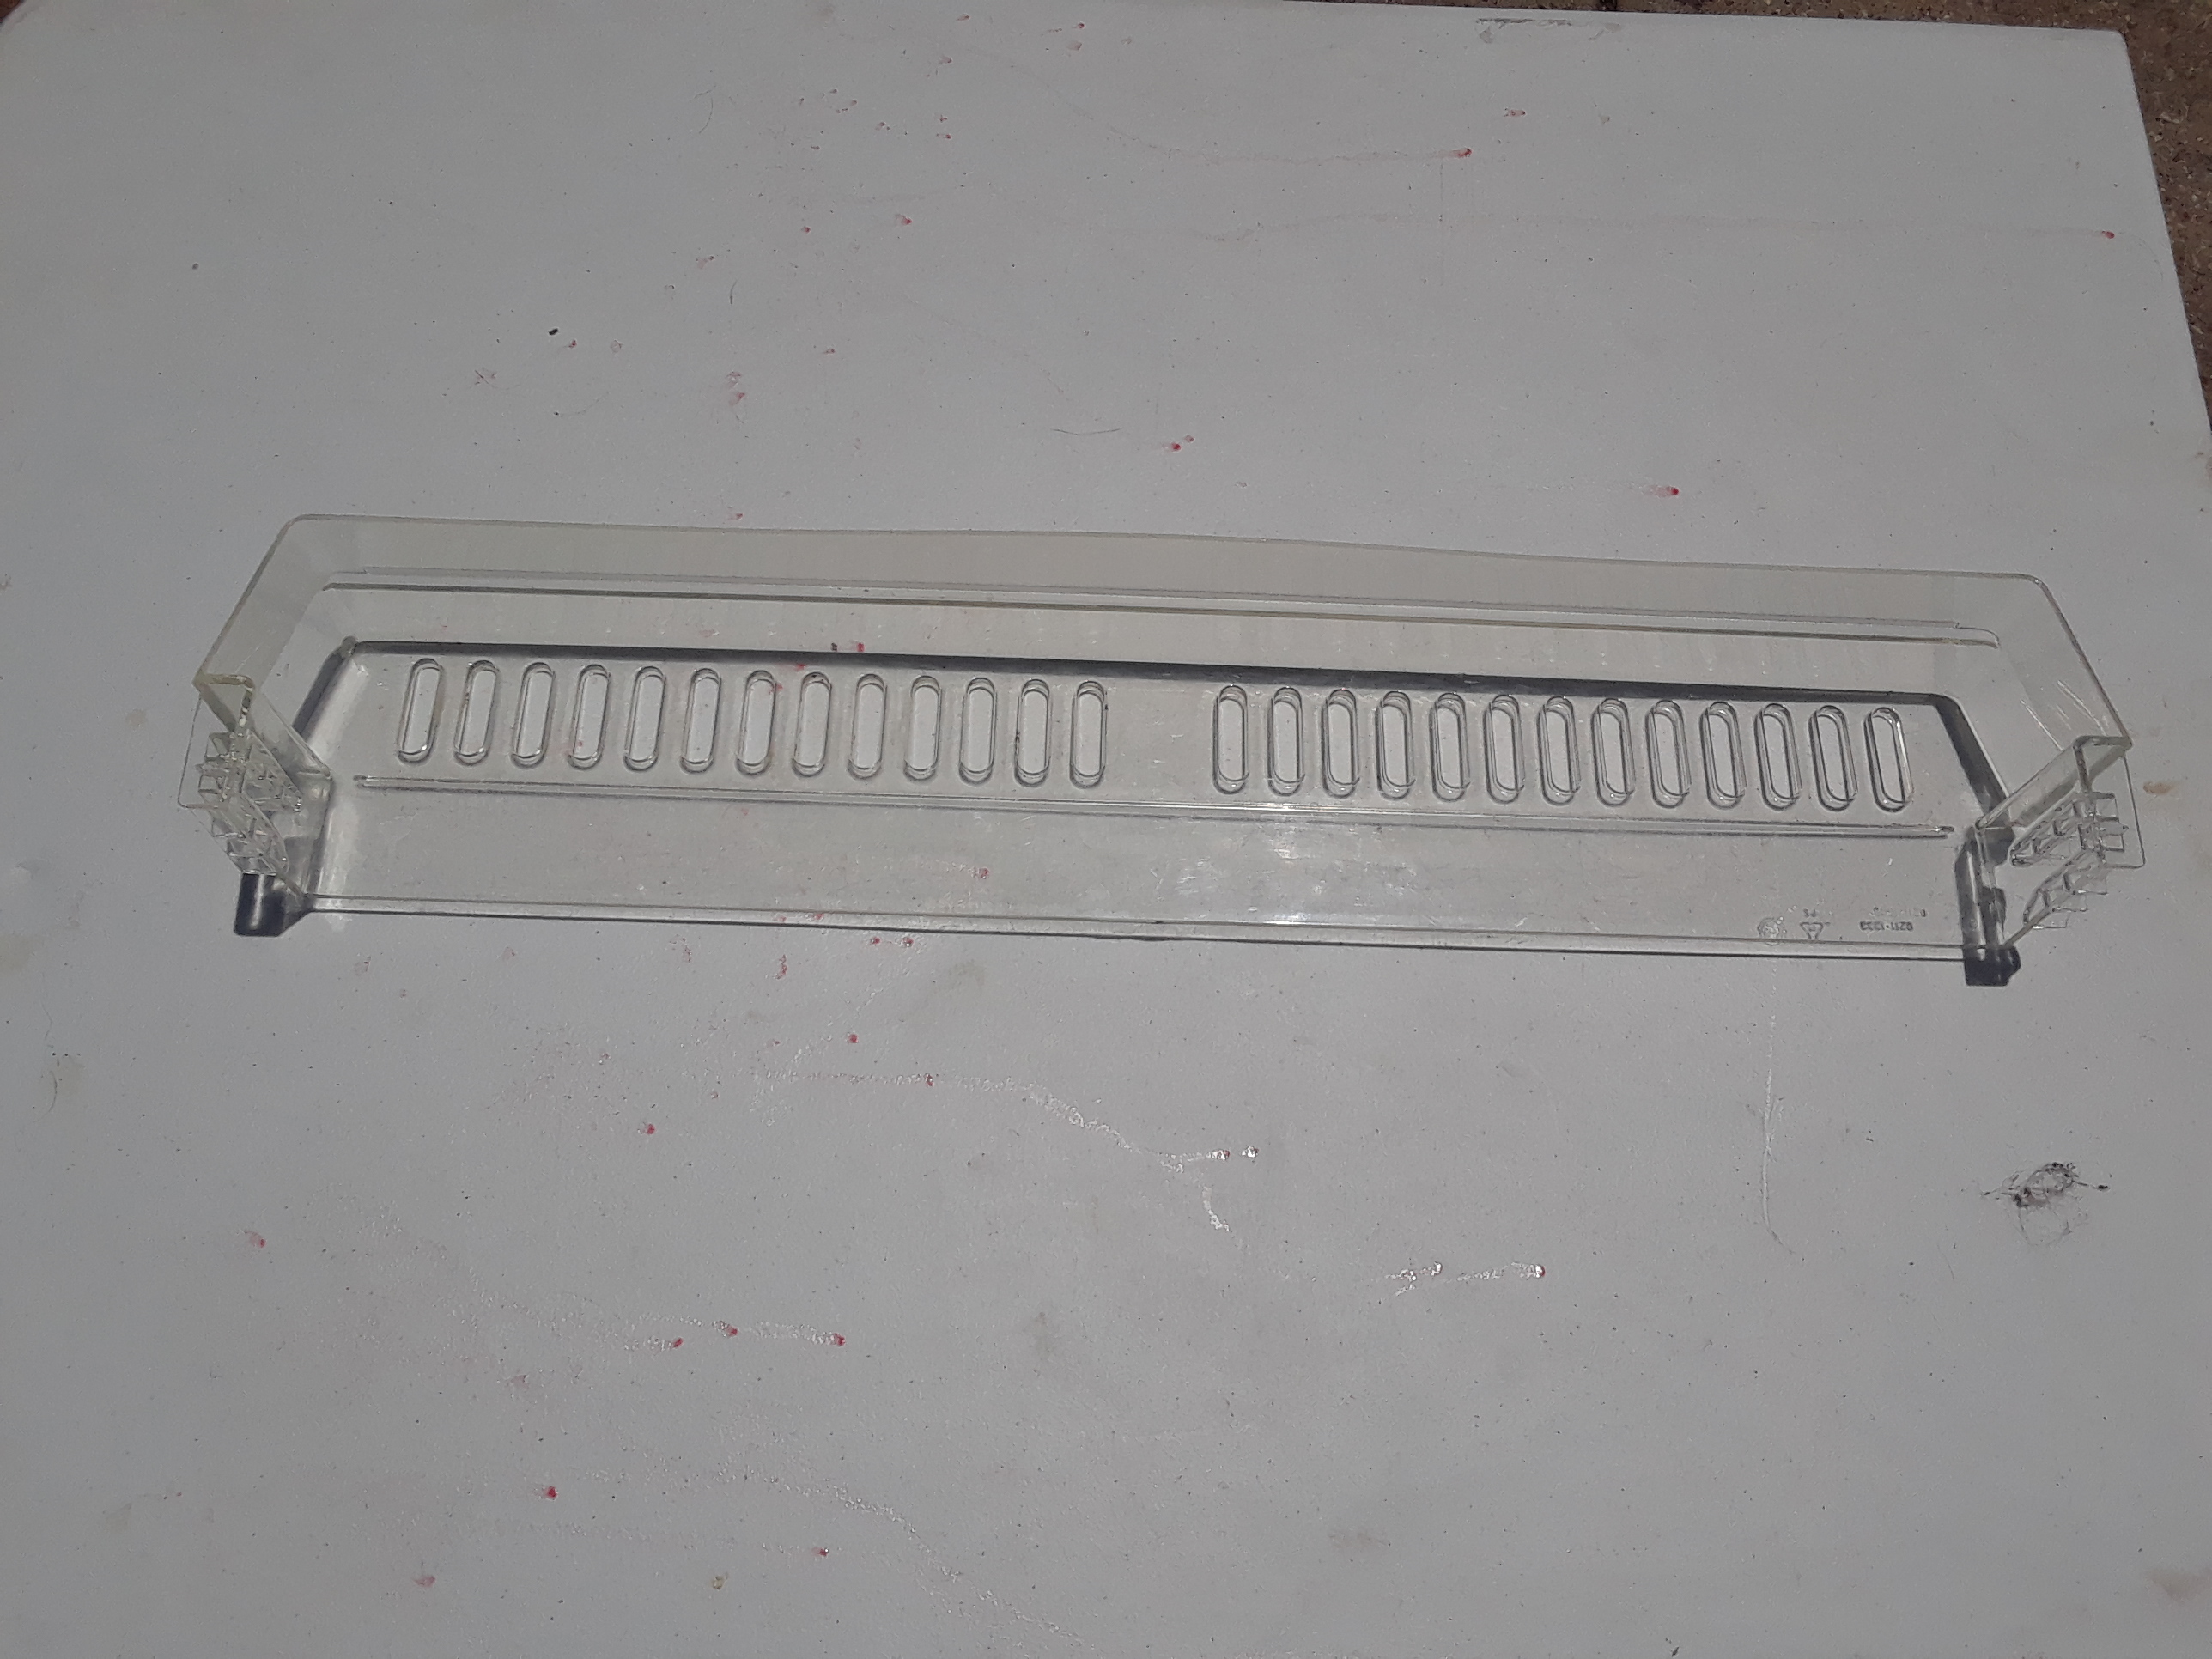 Haier Refrigerator Door Rack 02111333 Model RRTG21PAAW